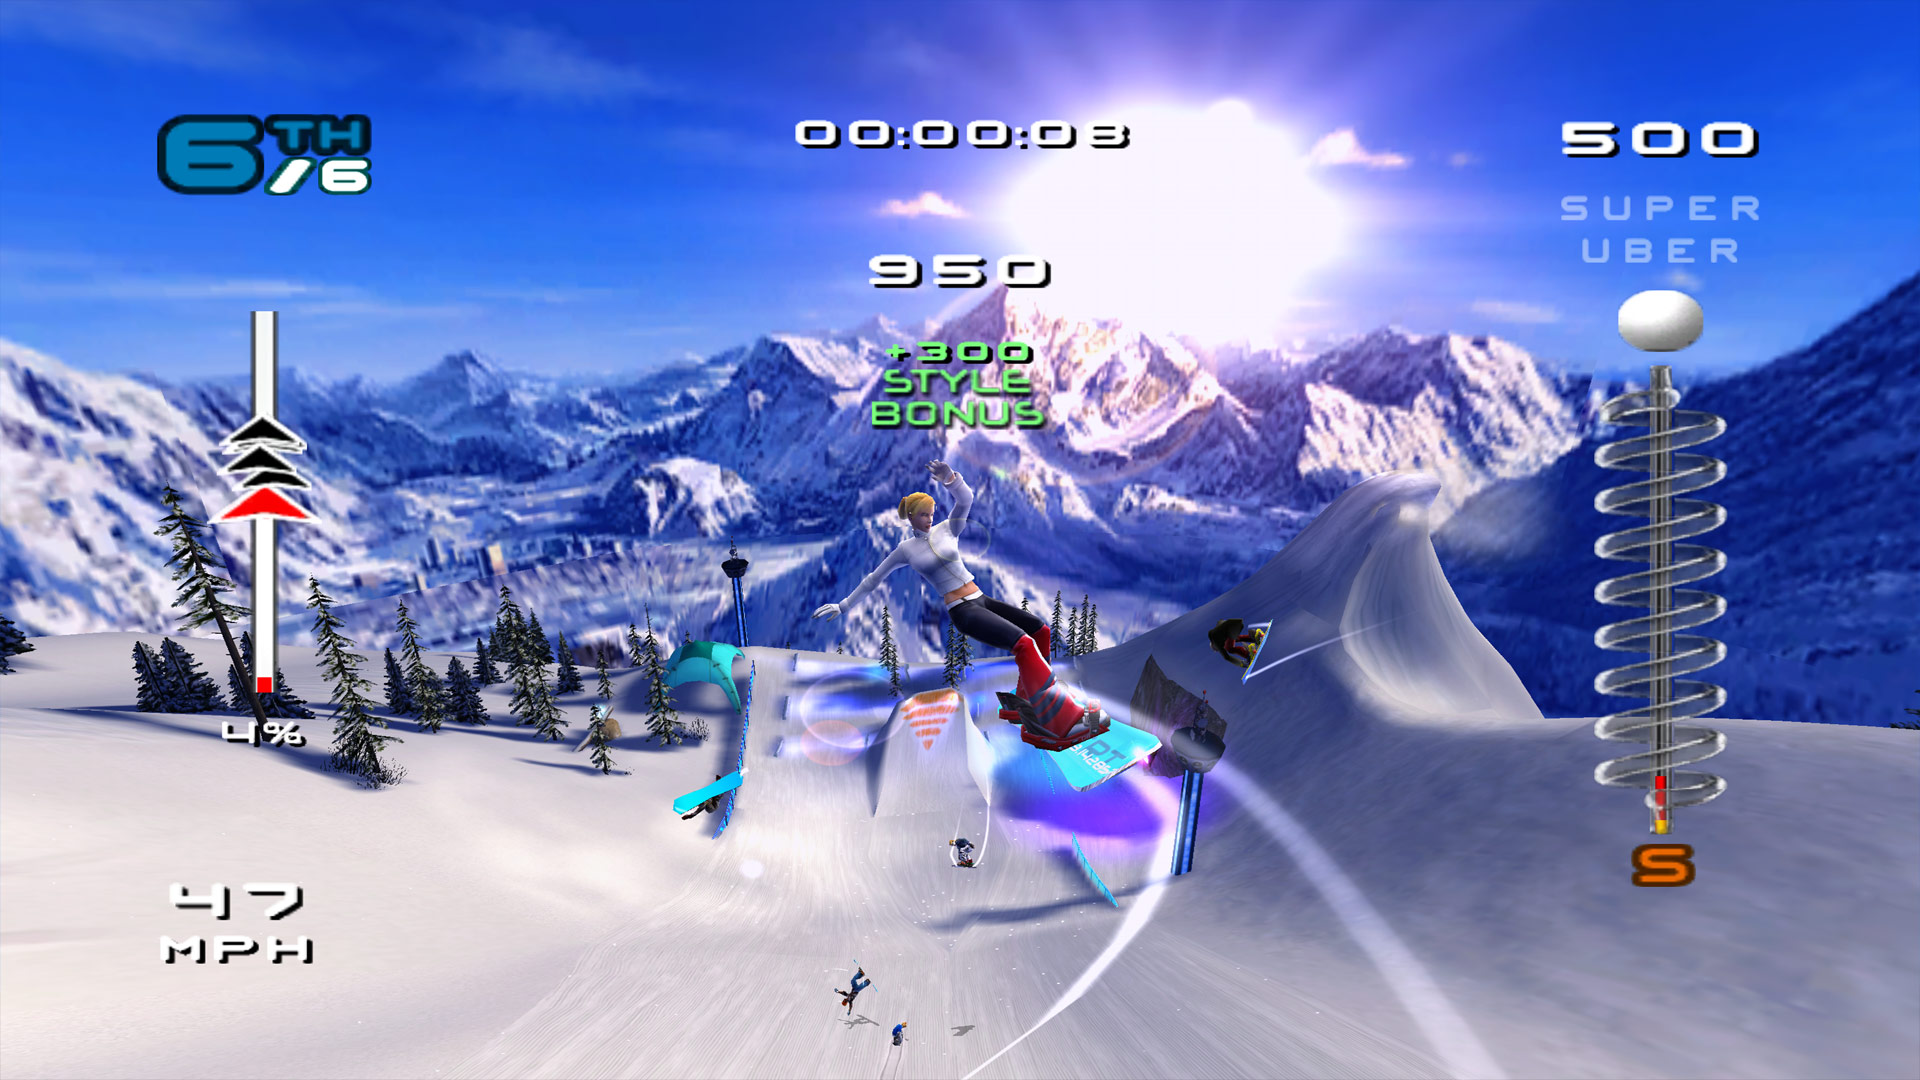 SSX 3 Xbox One X: One Year Later Screenshot